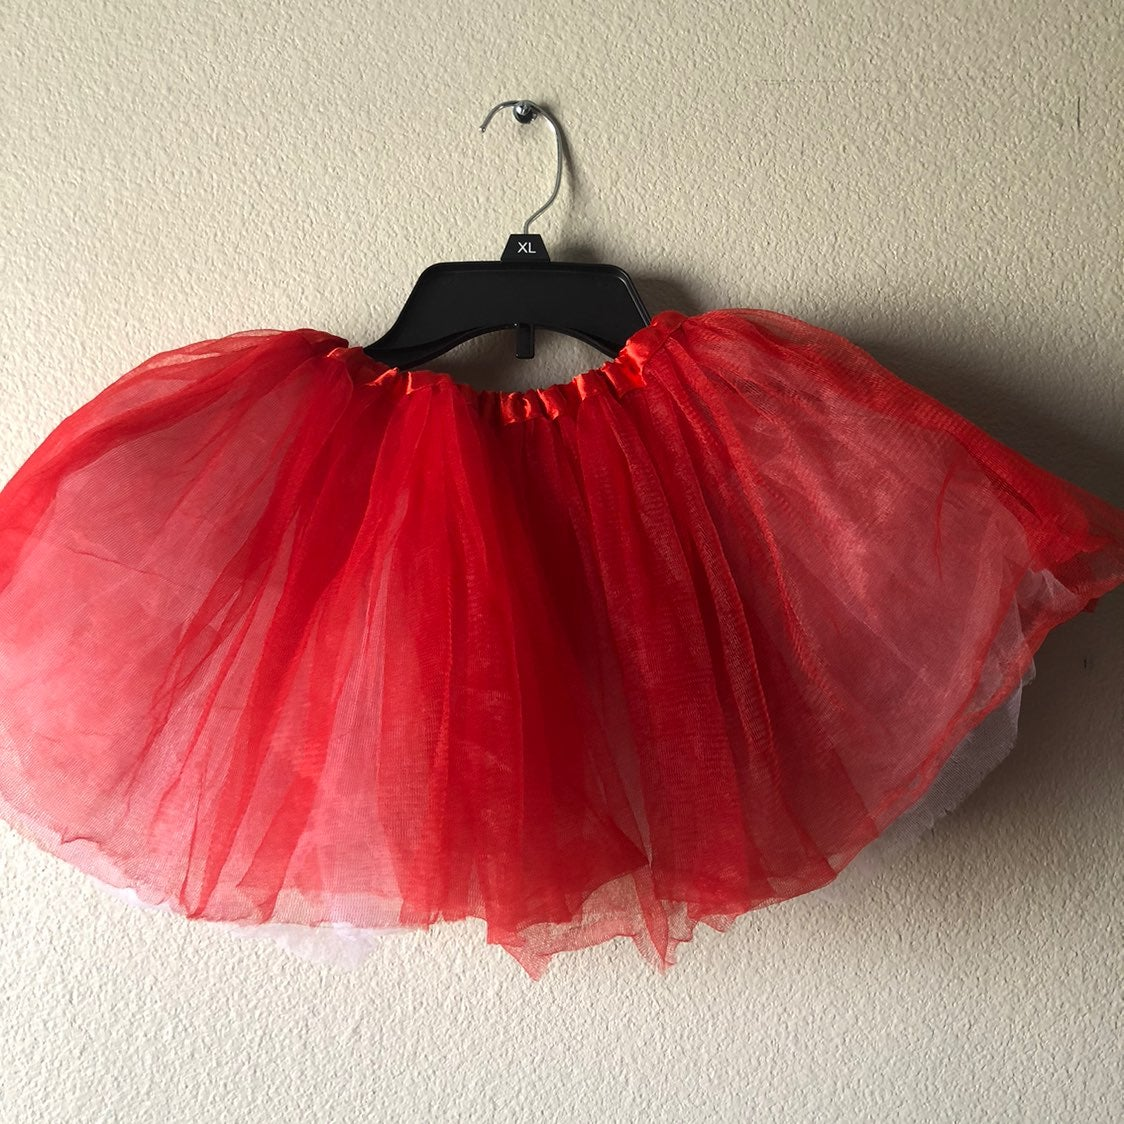 Reversible Tutu red White youth costume